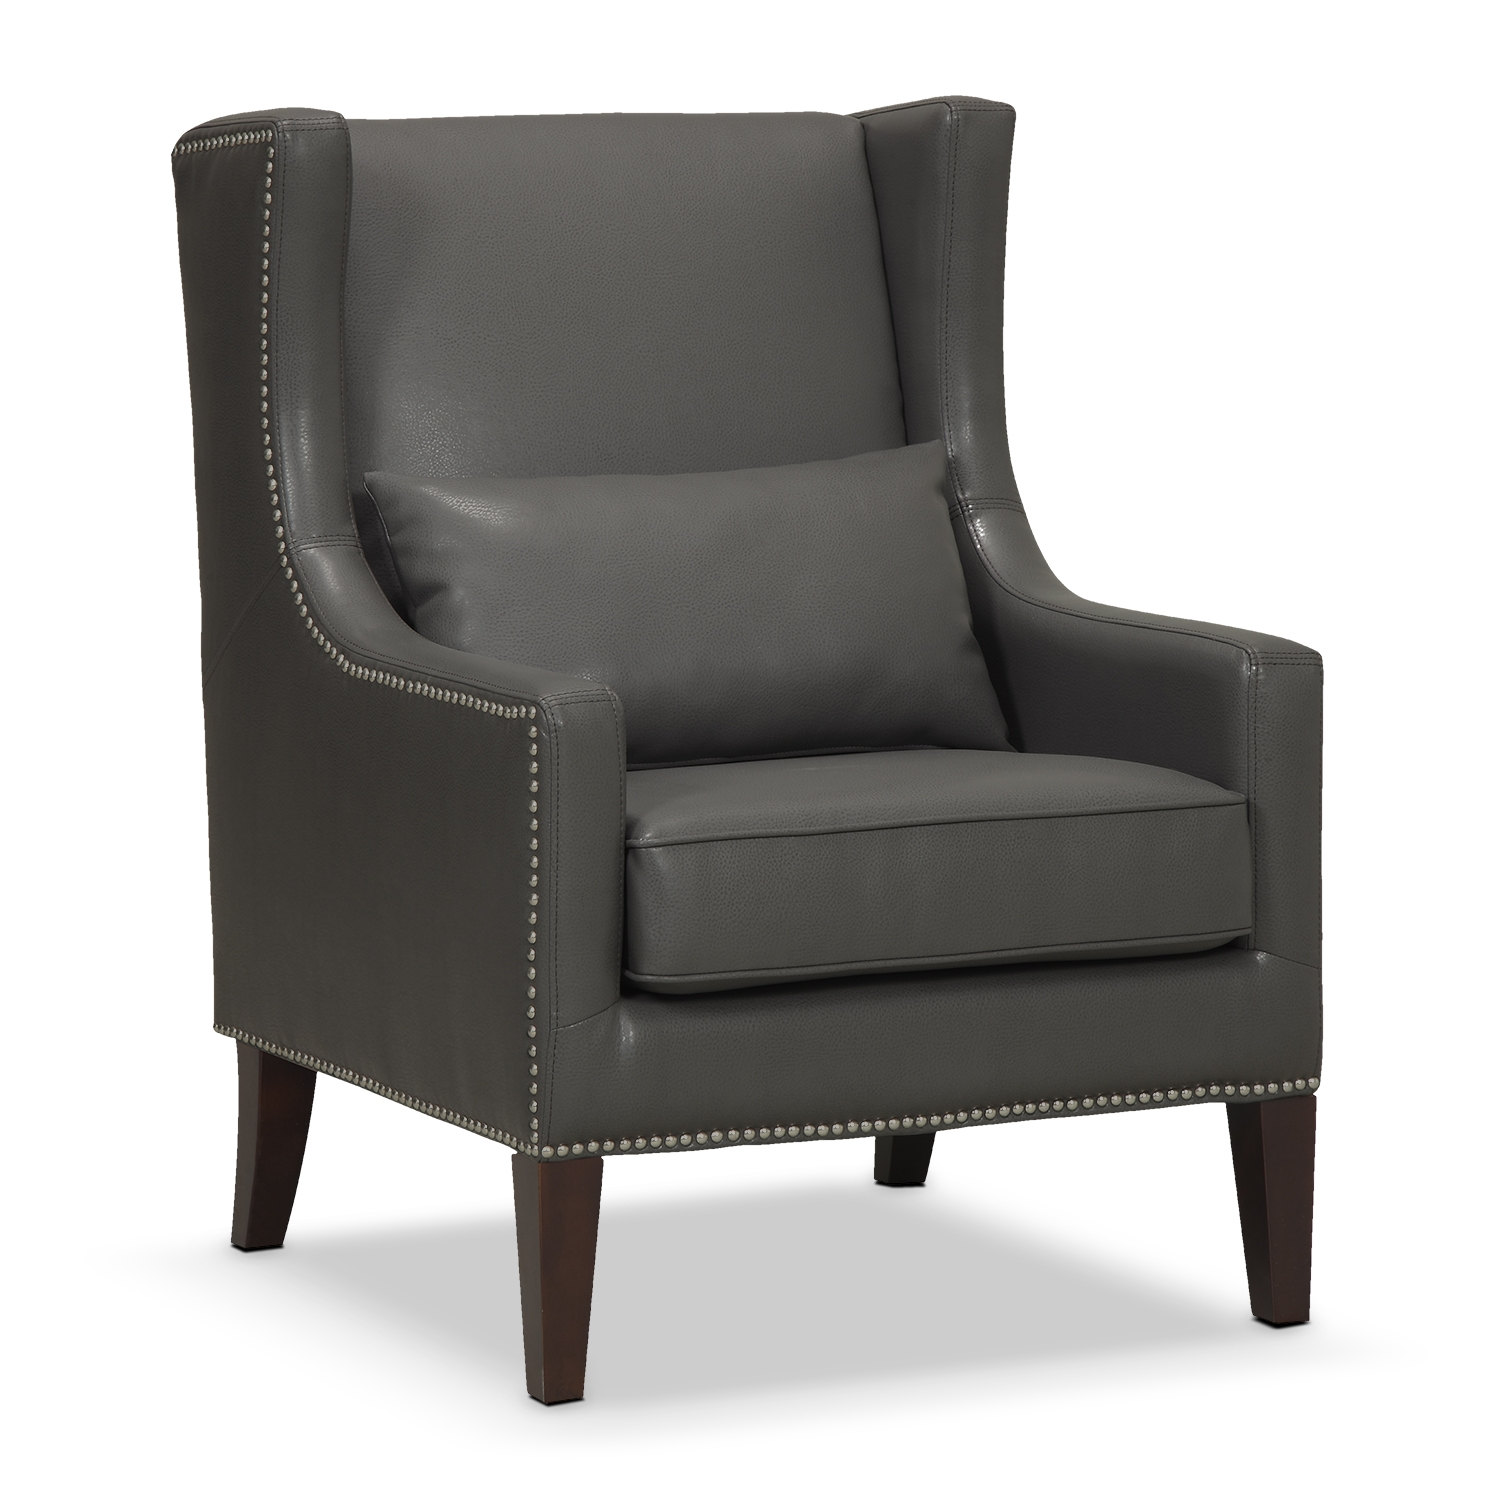 Great Accent Chair For Home Furniture Ideas With Accent Chairs With Arms And Accent Chairs For Living Room